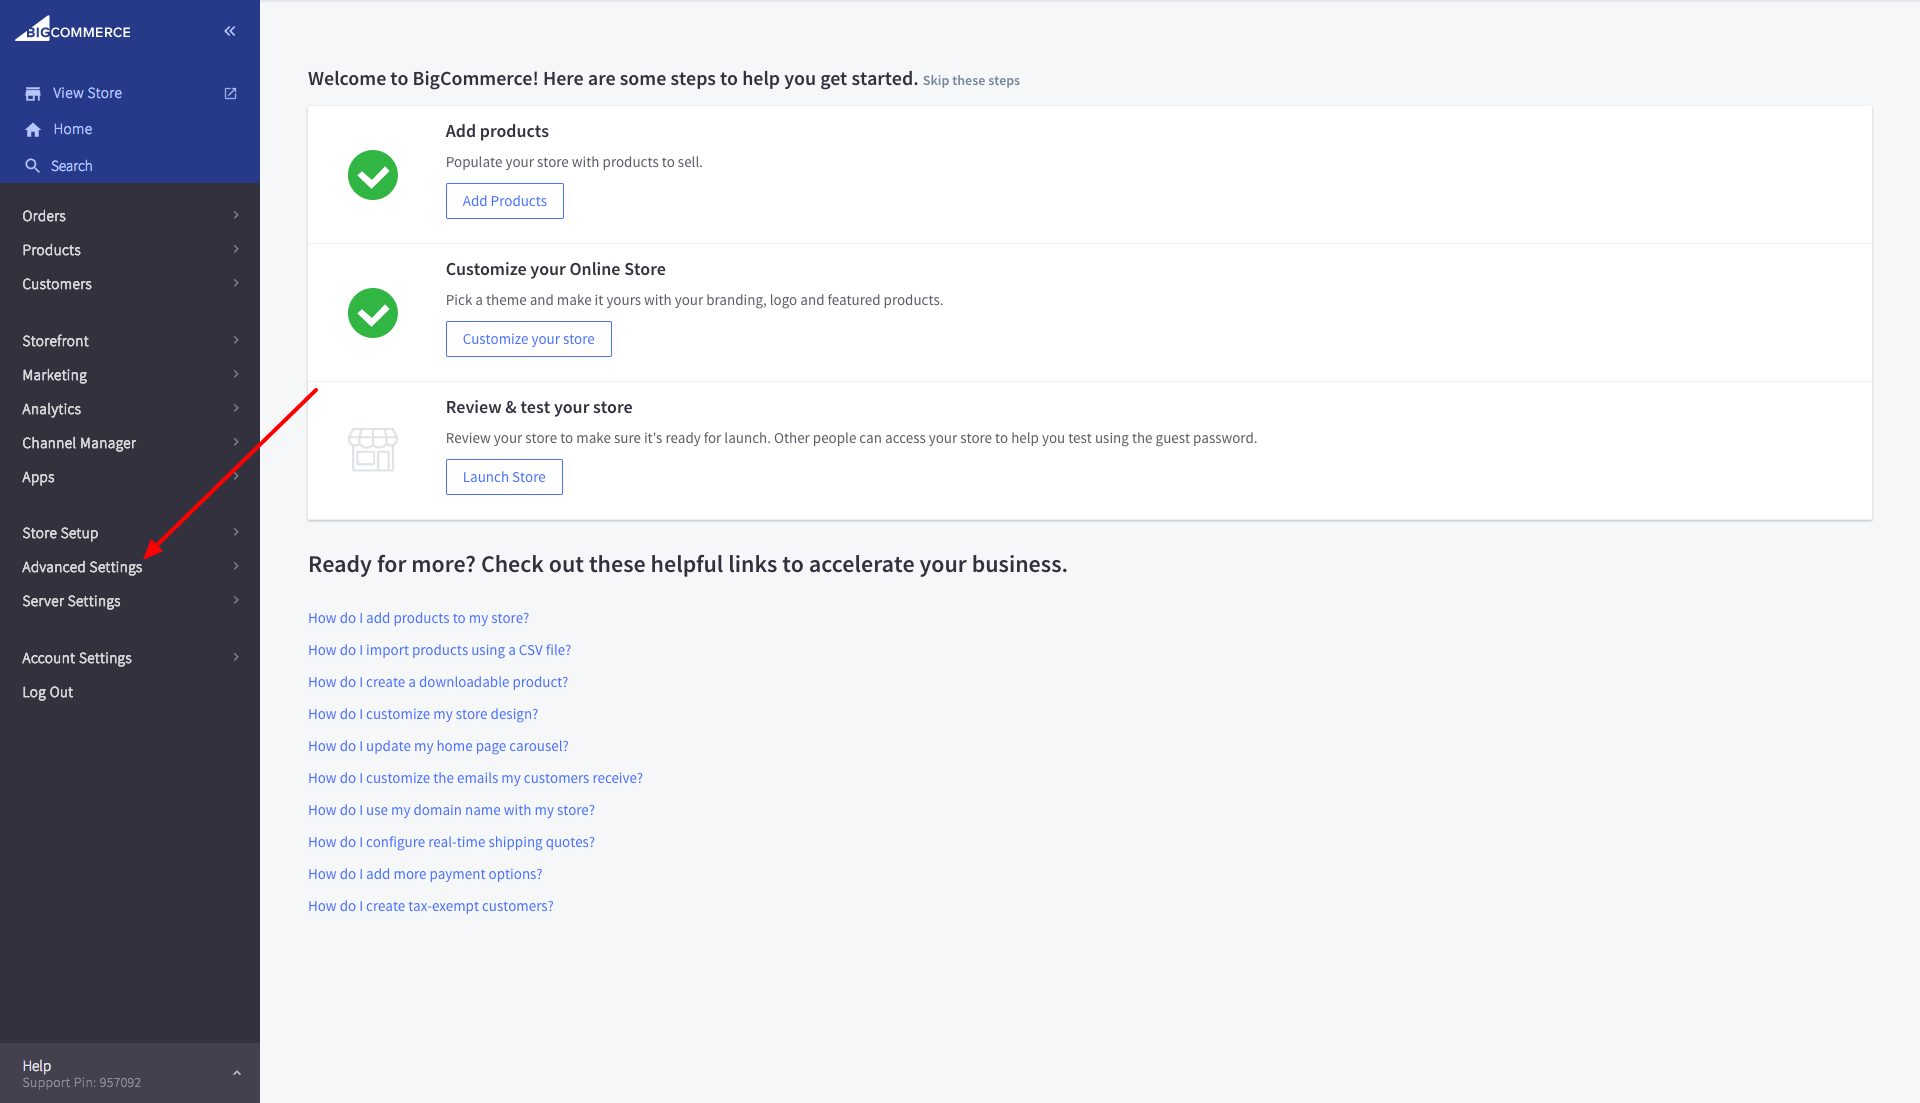 BigCommerce Advanced Settings